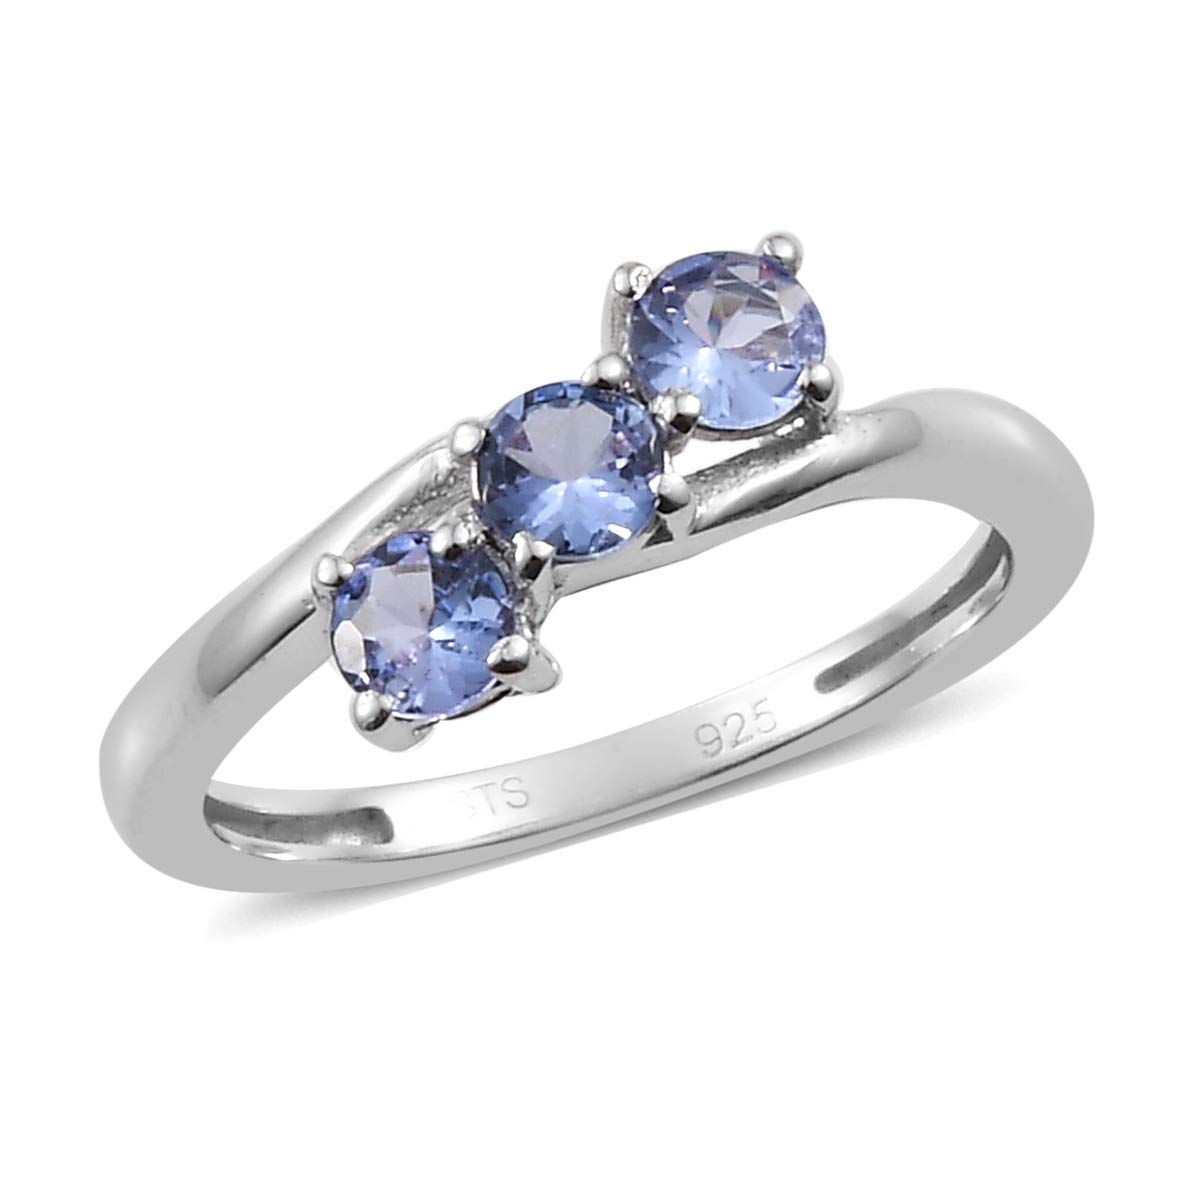 Round Tanzanite Ring 925 Sterling Silver Platinum Plated Jewelry for Women Size 6 Ct 0.5